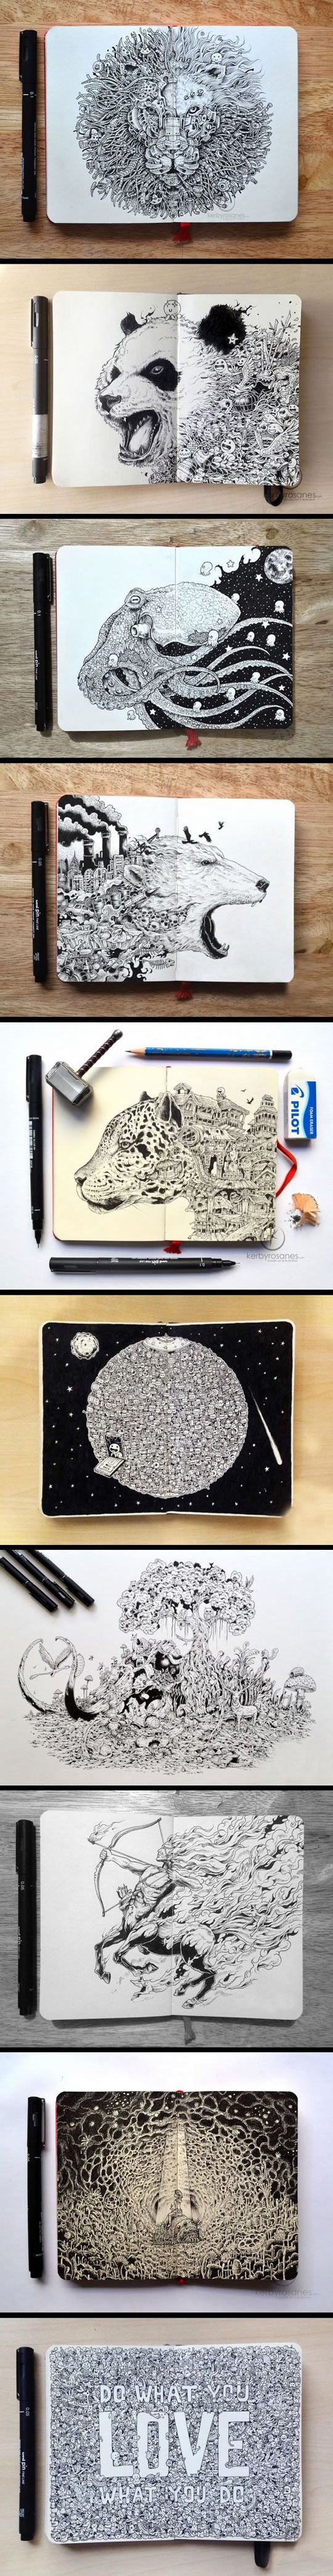 Hyper-Detailed Drawings - The Meta Picture, these are...wow.